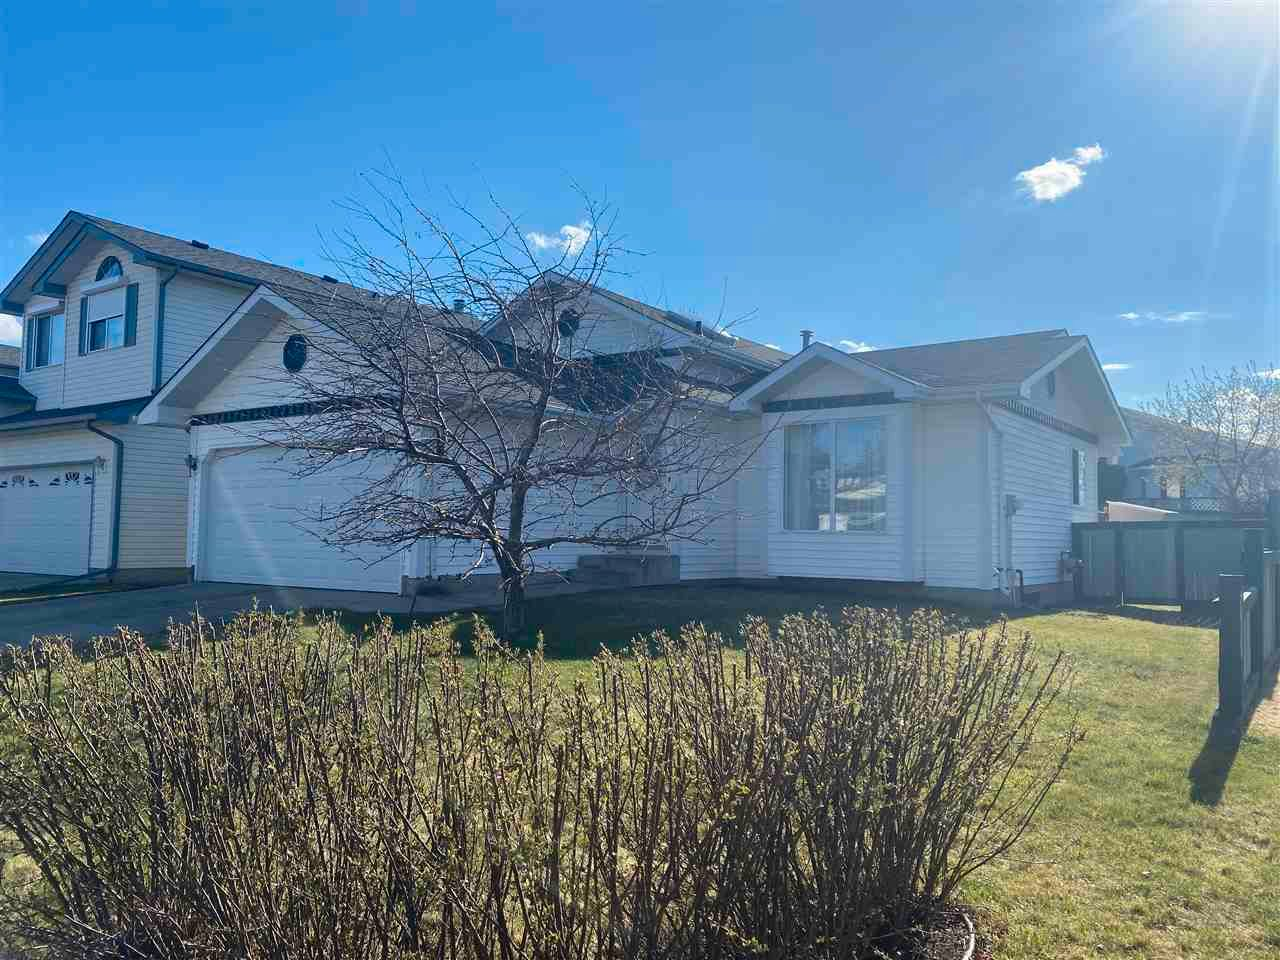 Main Photo: 1145 POTTER GREENS Drive in Edmonton: Zone 58 House for sale : MLS®# E4243346